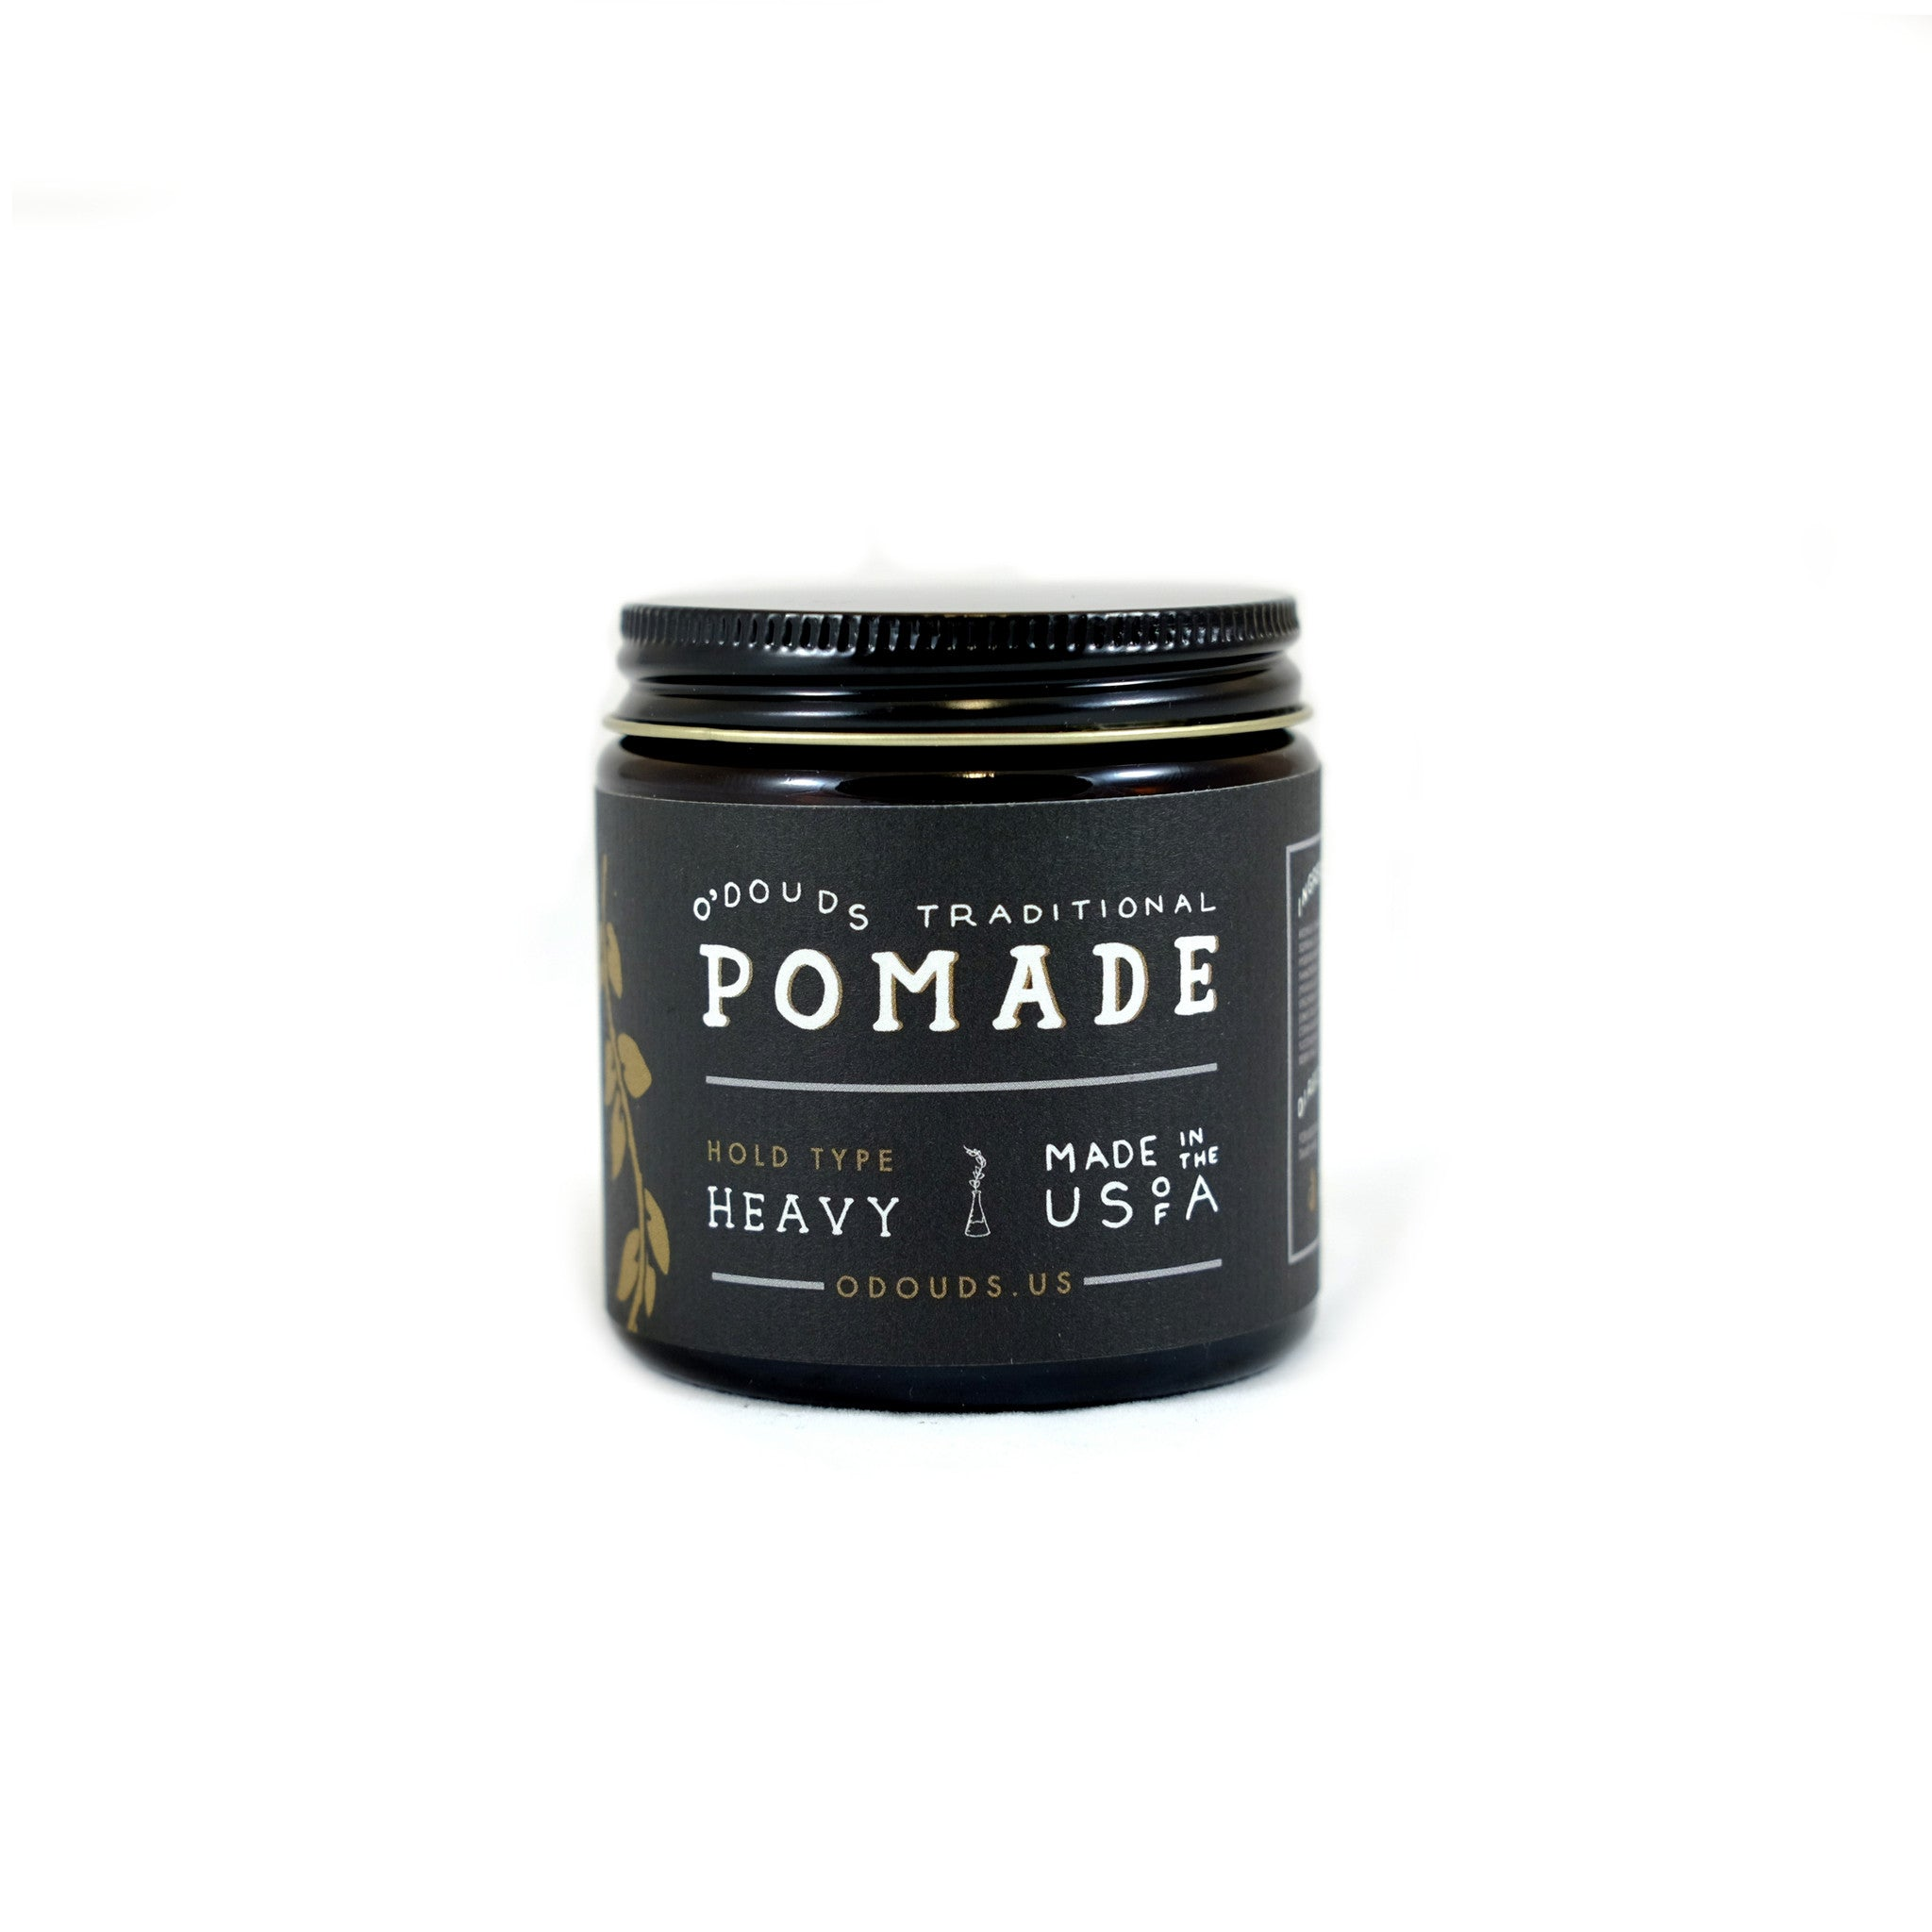 O Douds Traditional Original Pomade 113g